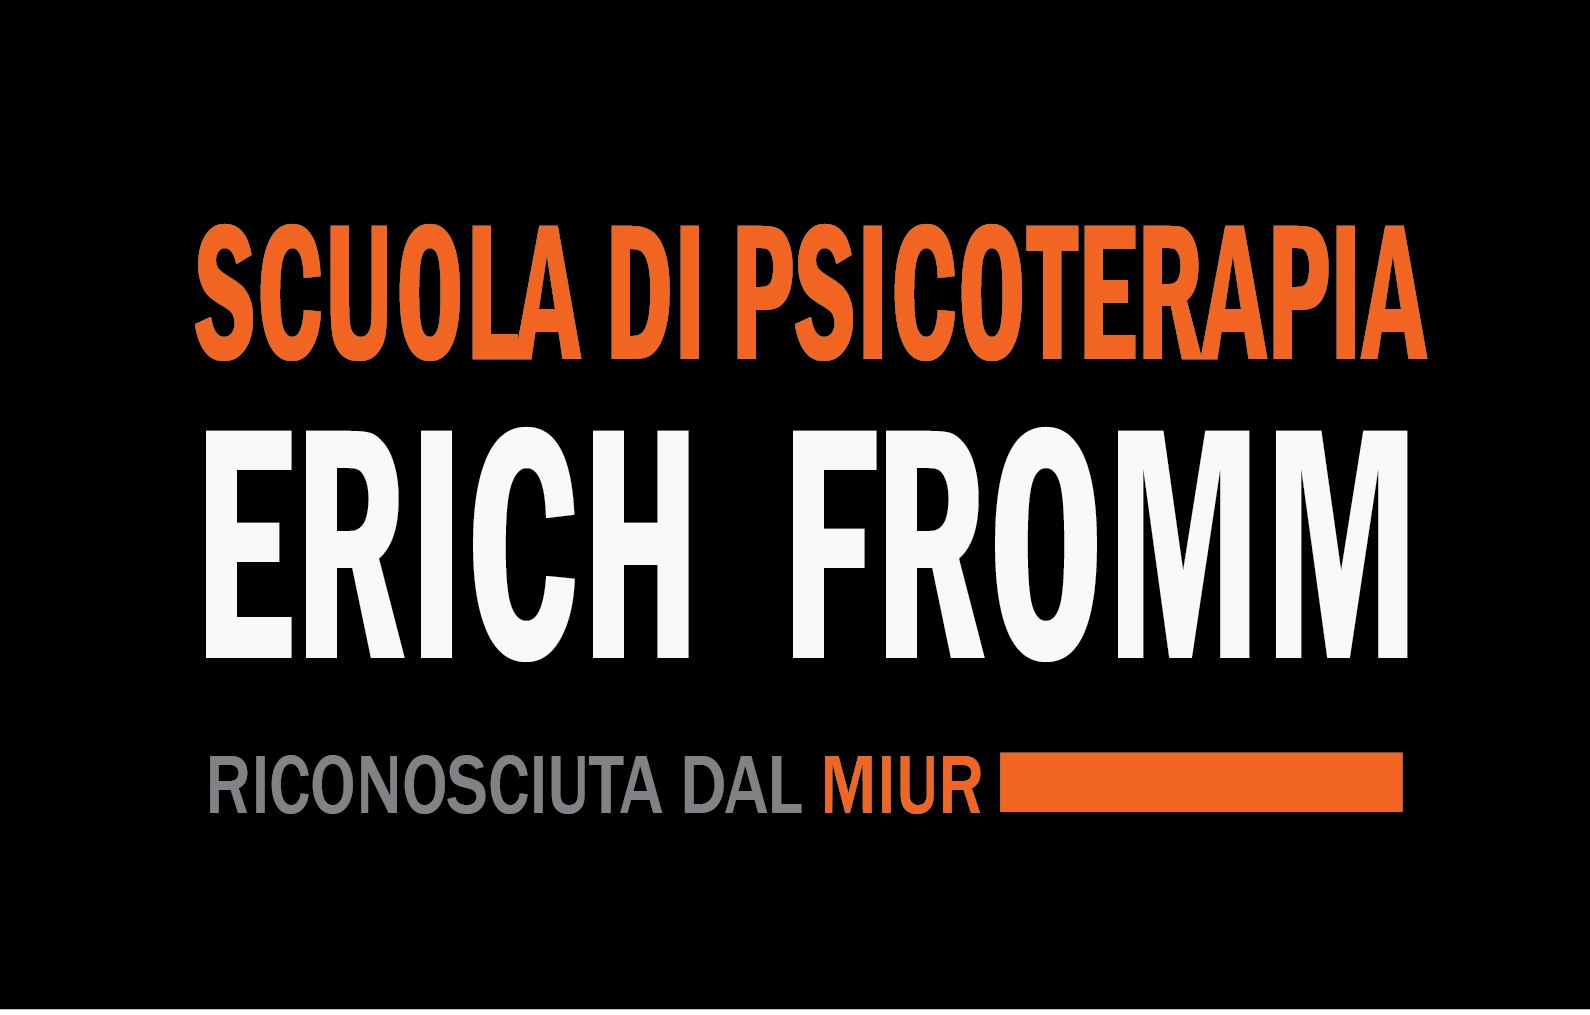 Scuola di Psicoterapia Erich Fromm